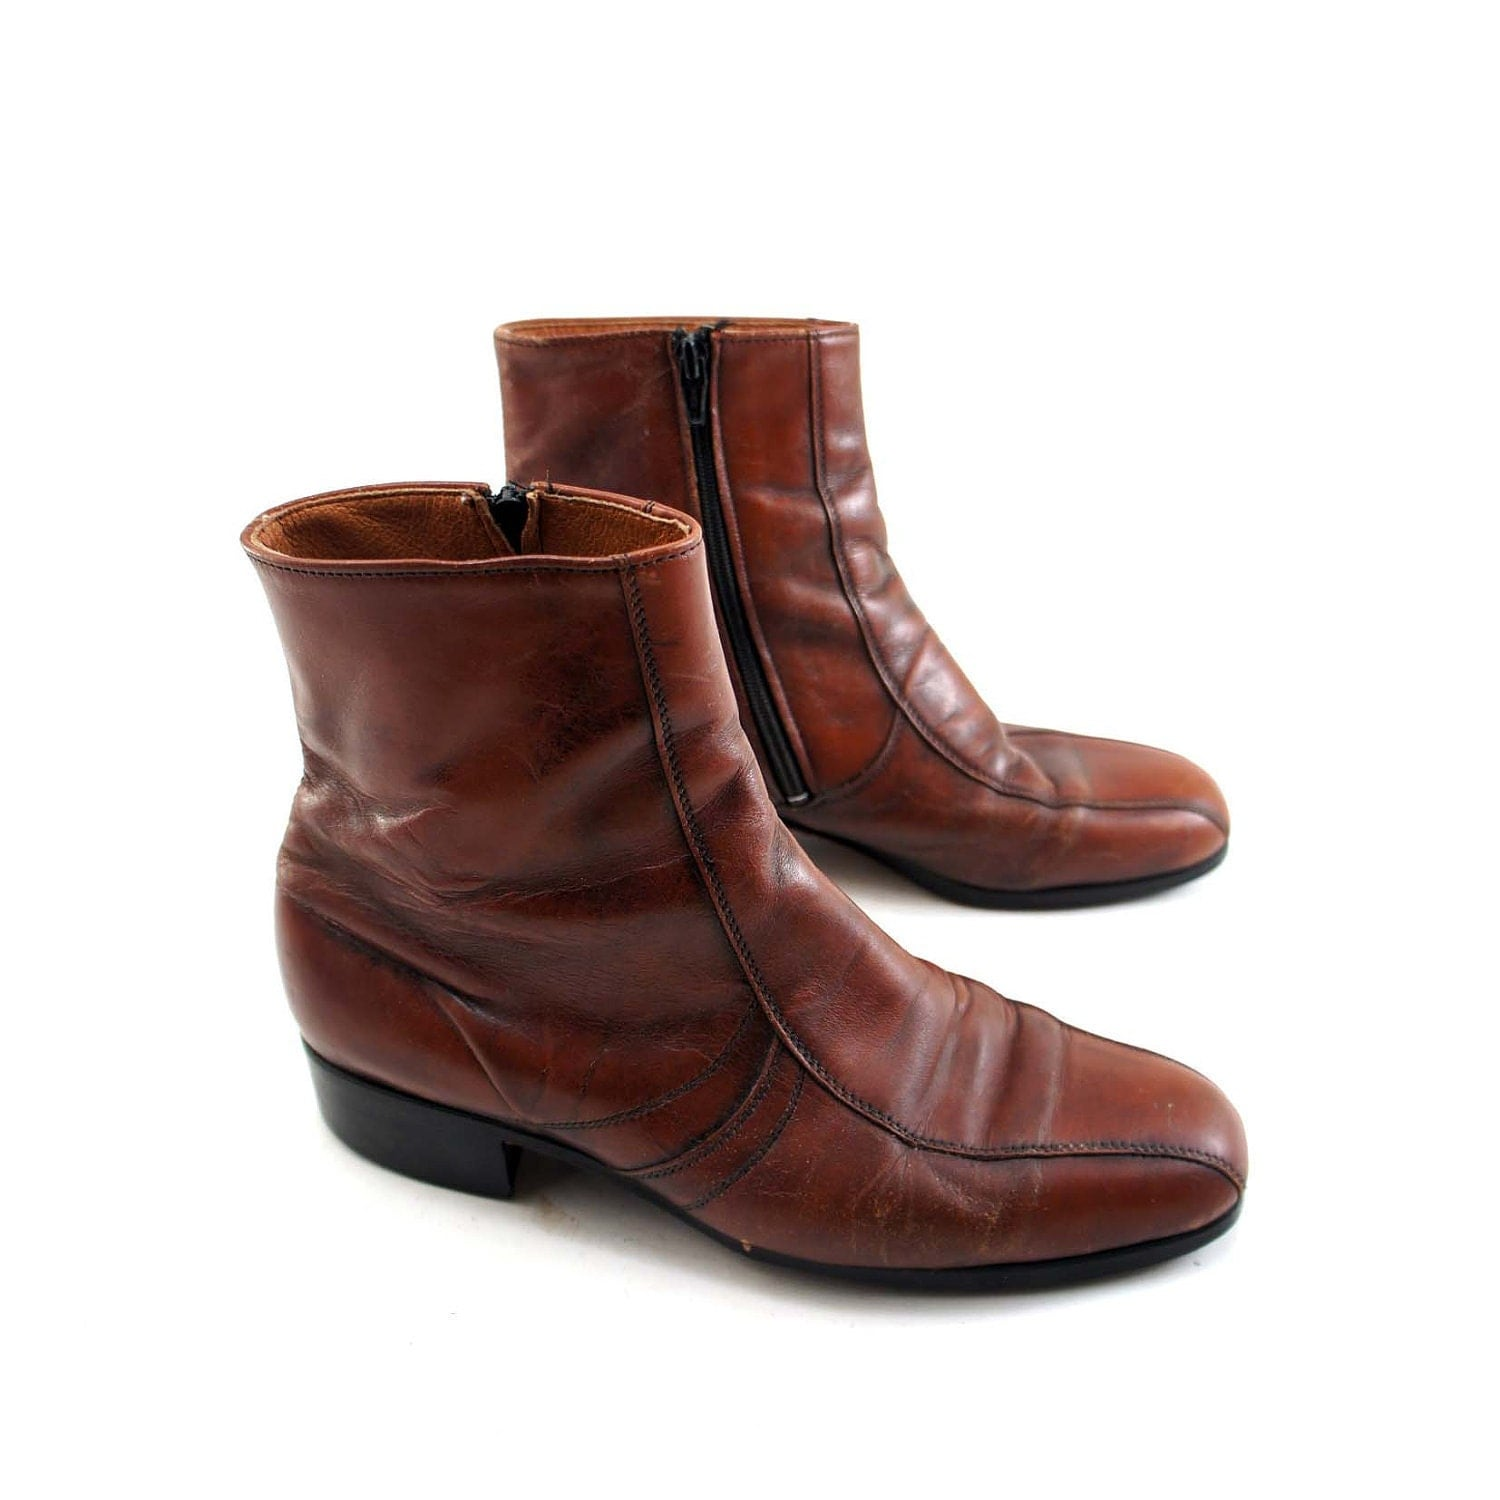 Vintage Beatle Boots With Zipperes Sides In Brown For A